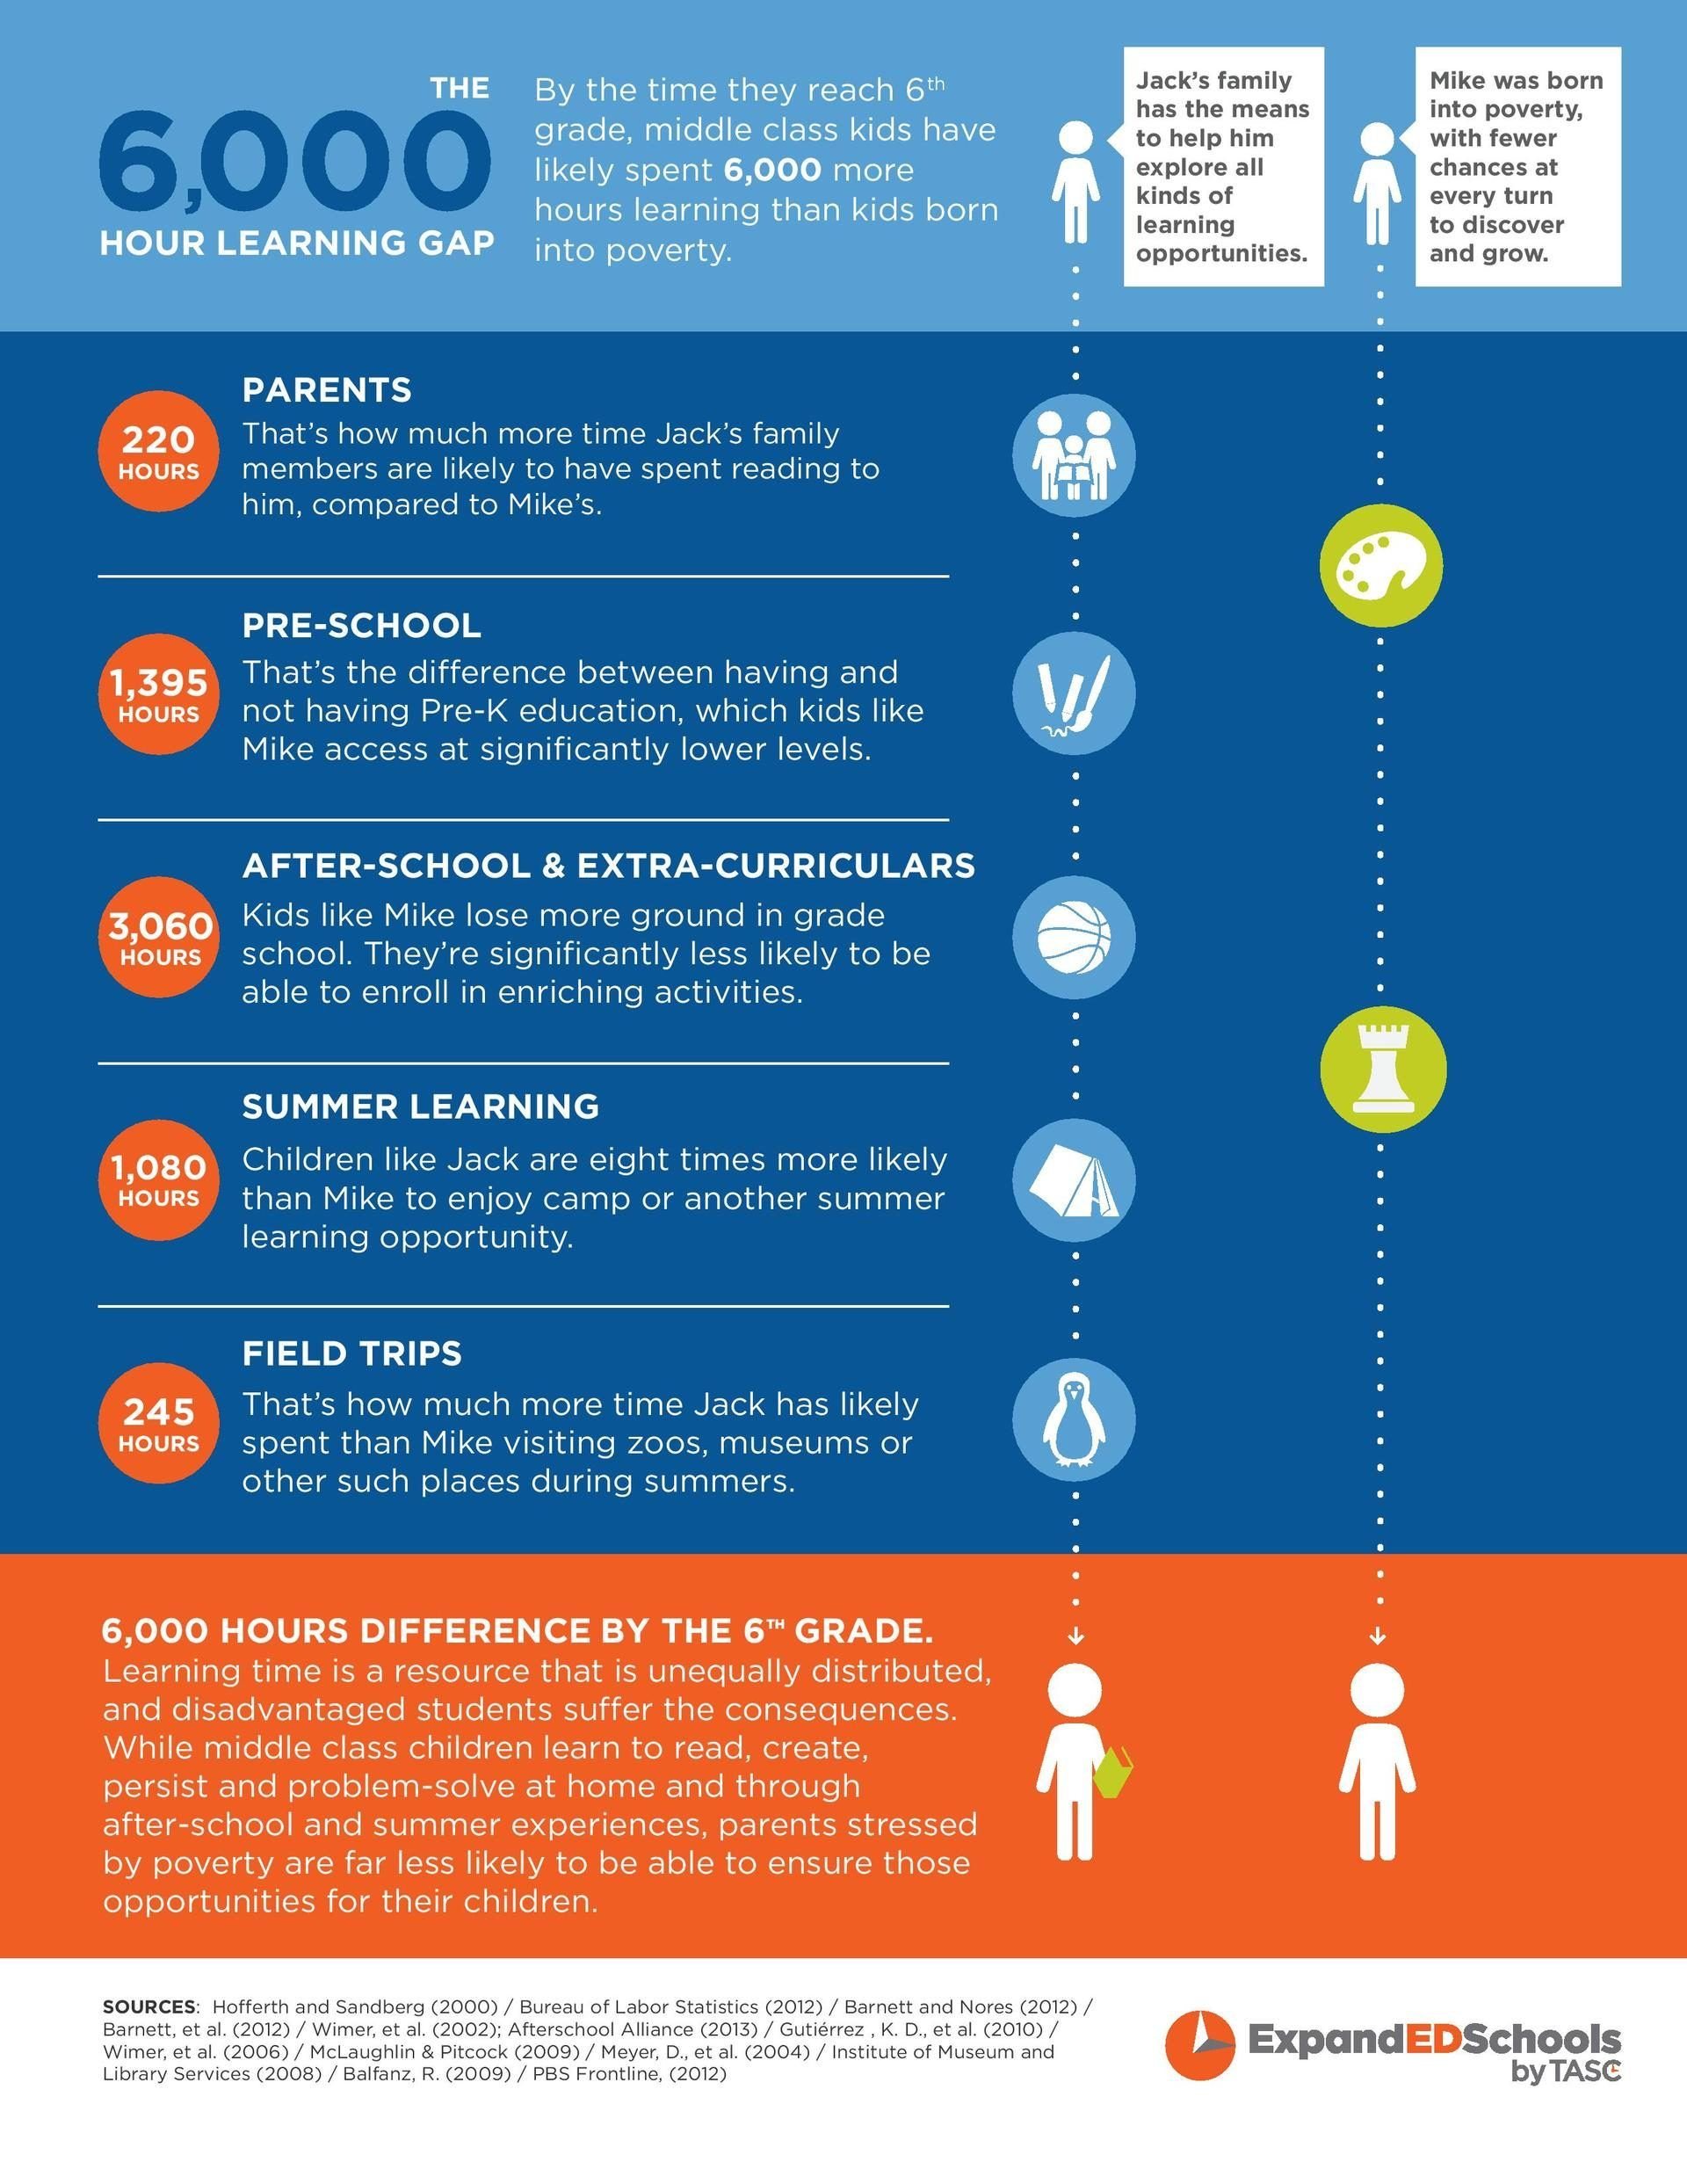 The Learning Gap Infographic